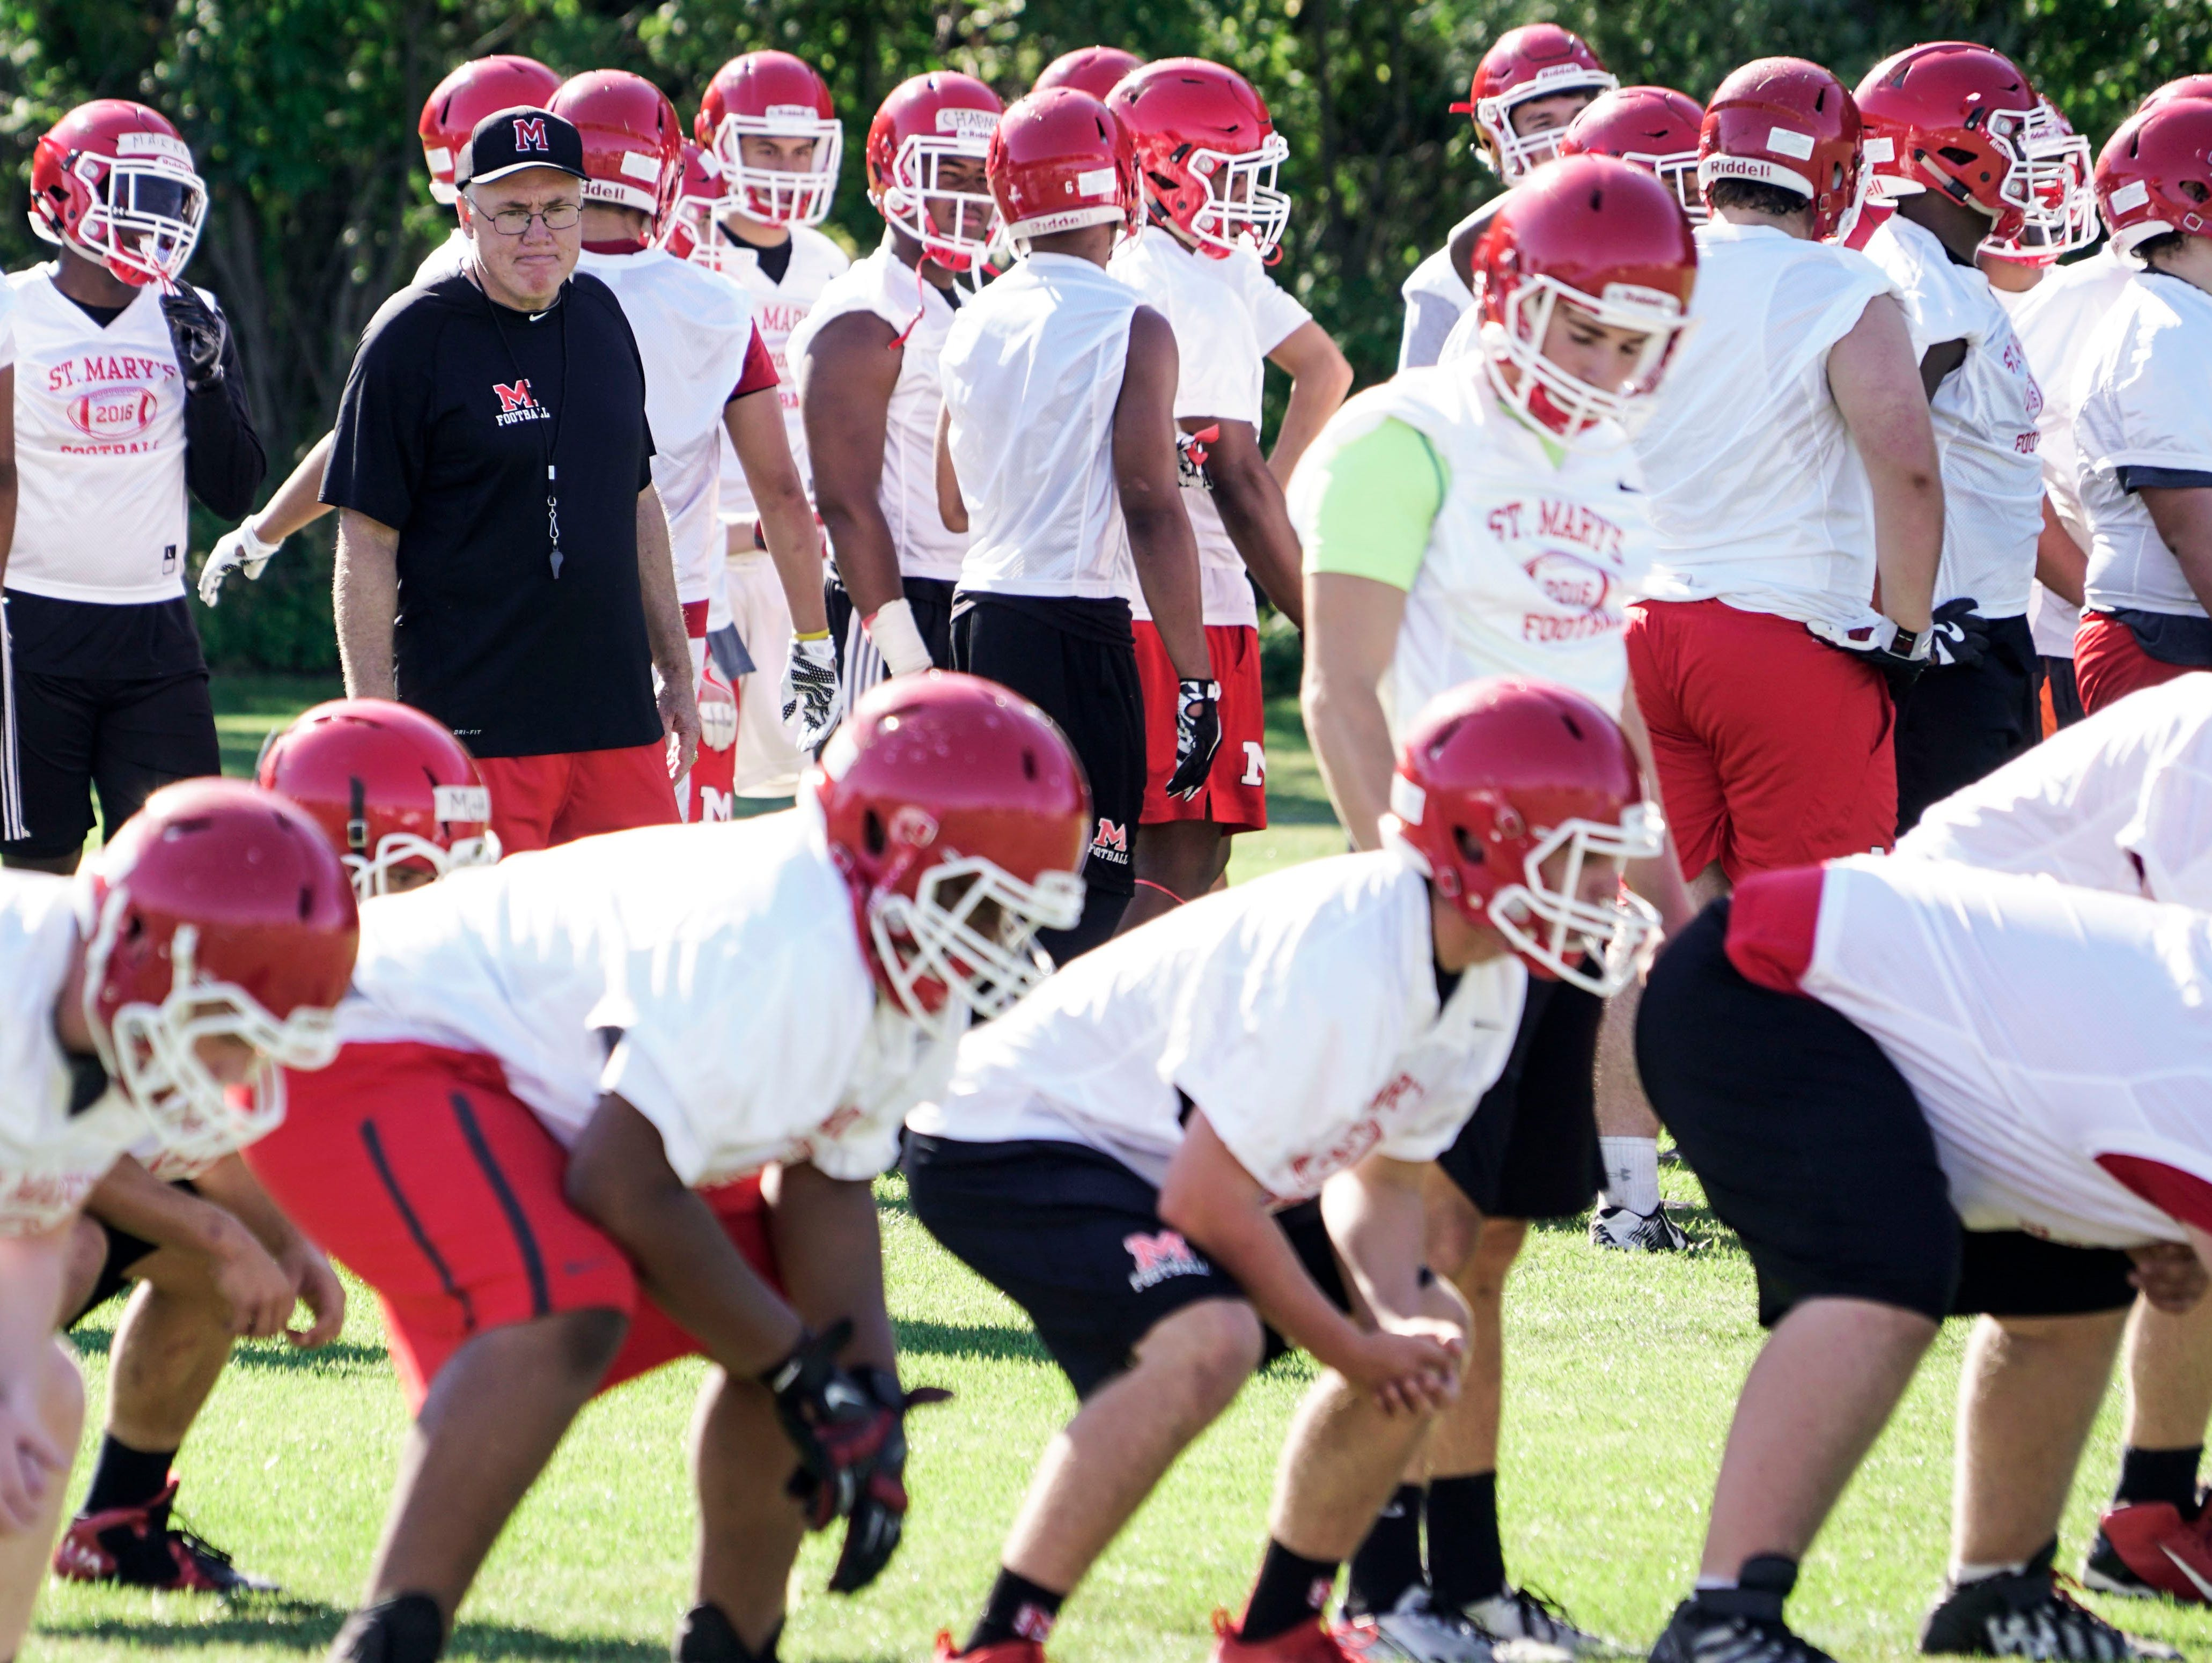 Head coach George Porritt, left, watches as the team runs drills during the first Orchard Lake St. Mary's High School football practice on Monday, Aug. 8, 2016 at Orchard Lake St. Mary's High School in Orchard Lake Village.